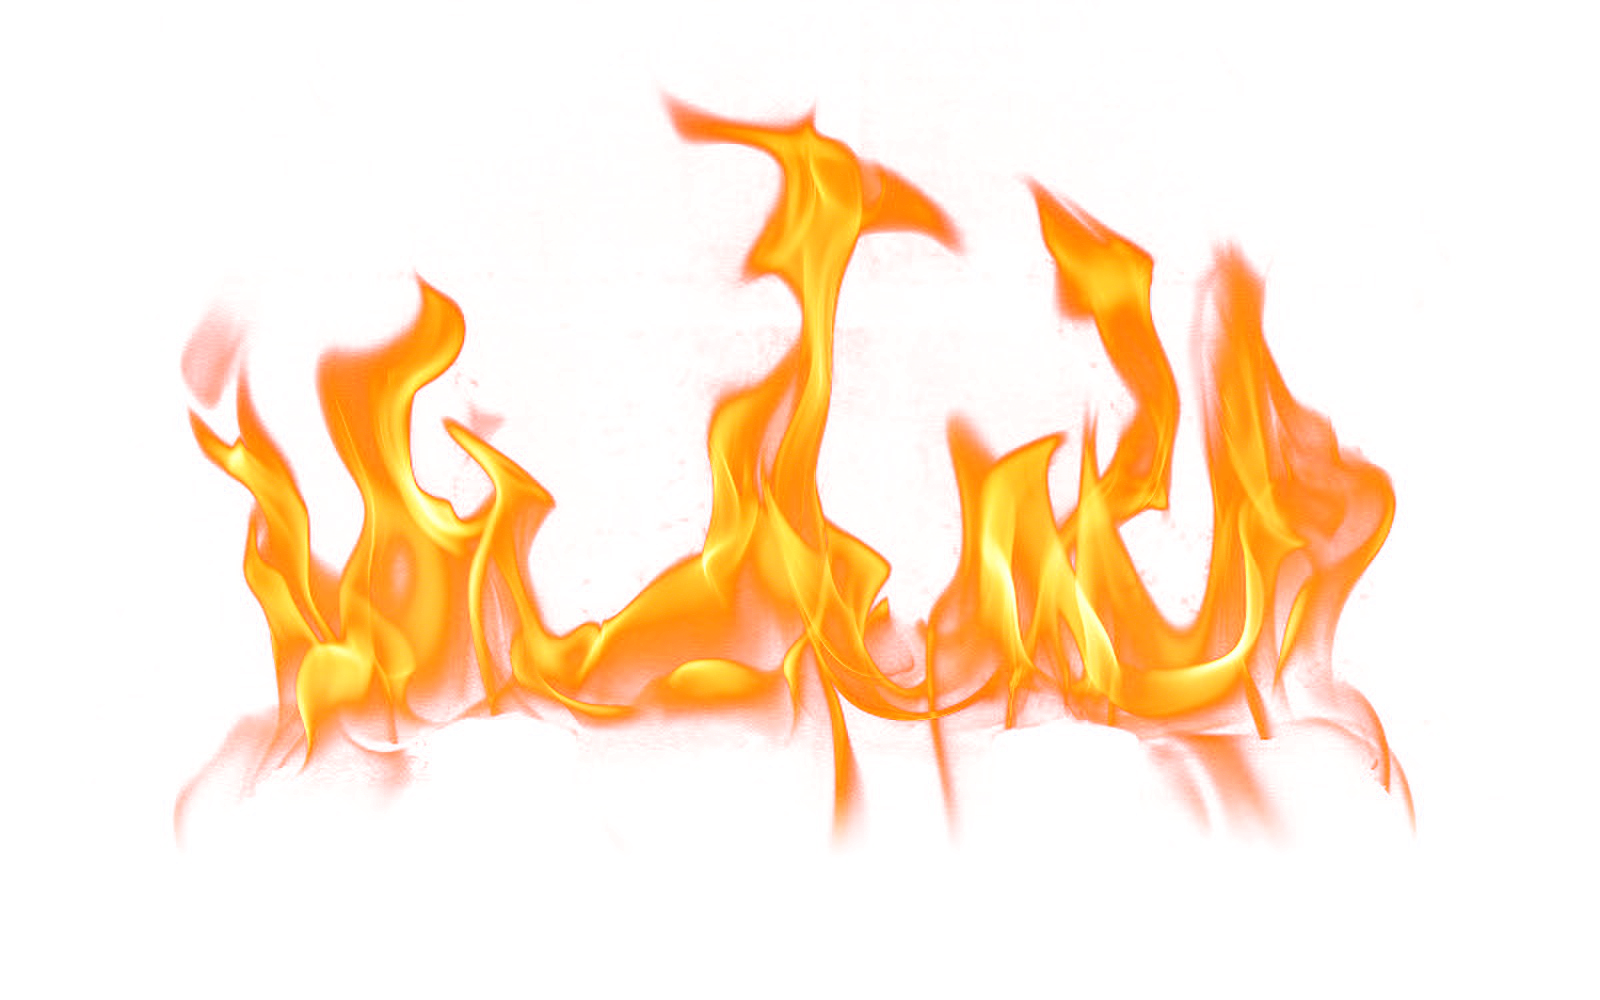 fire rendered in PNG with alp